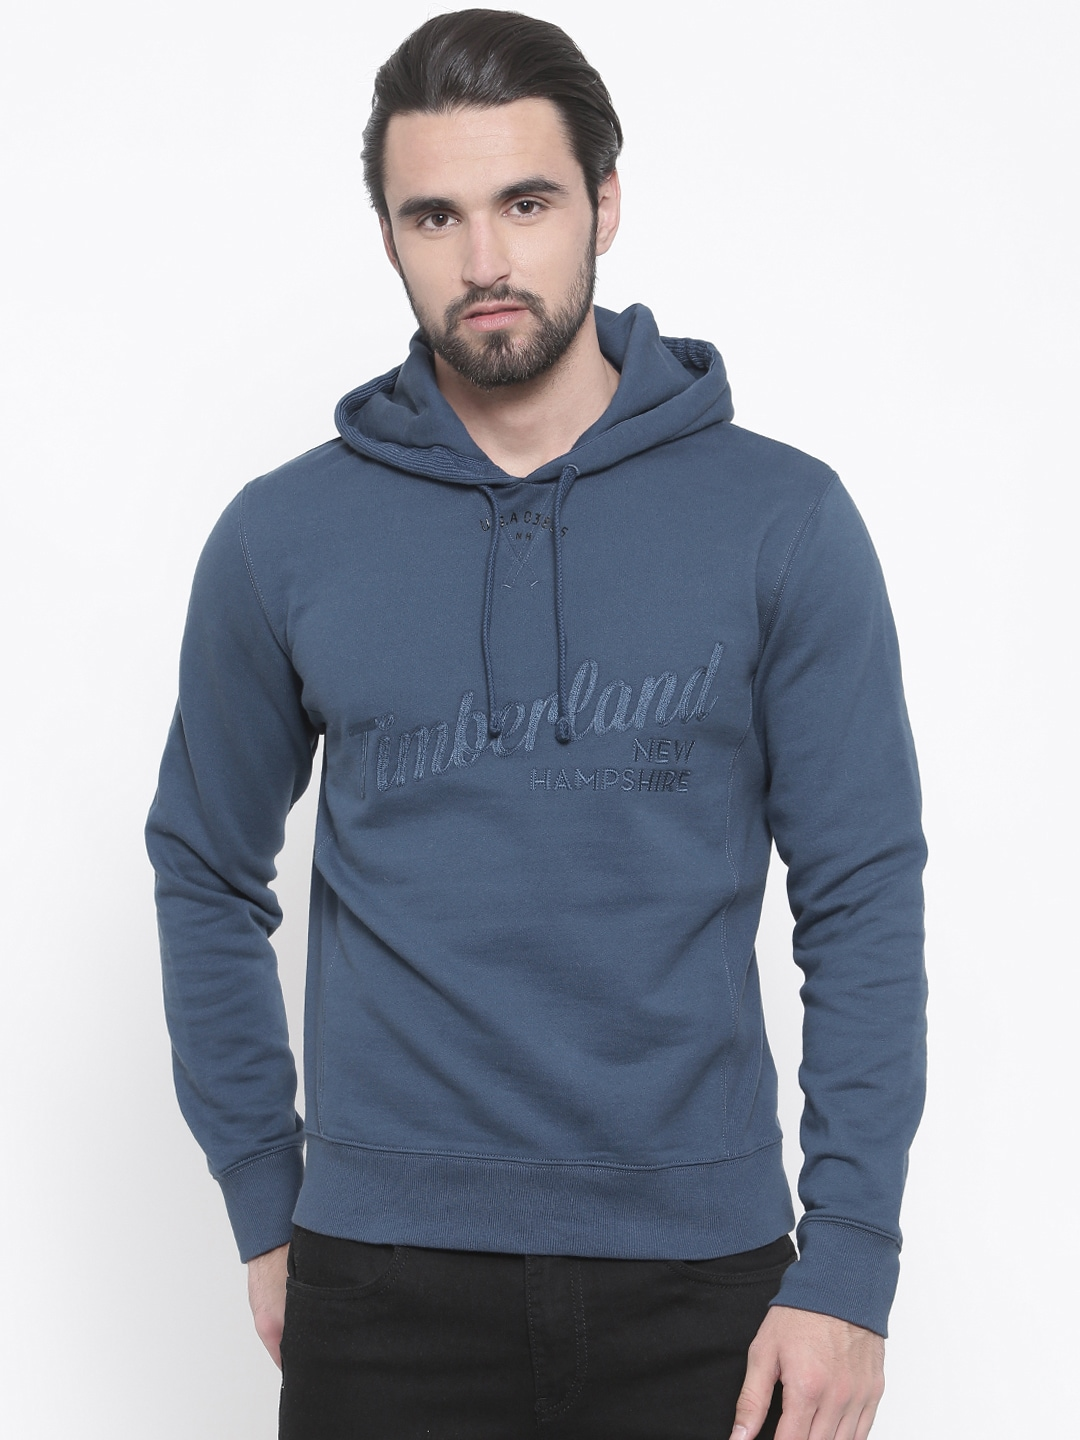 Buy Timberland Blue Solid Hooded Men's Sweatshirt At Best Price